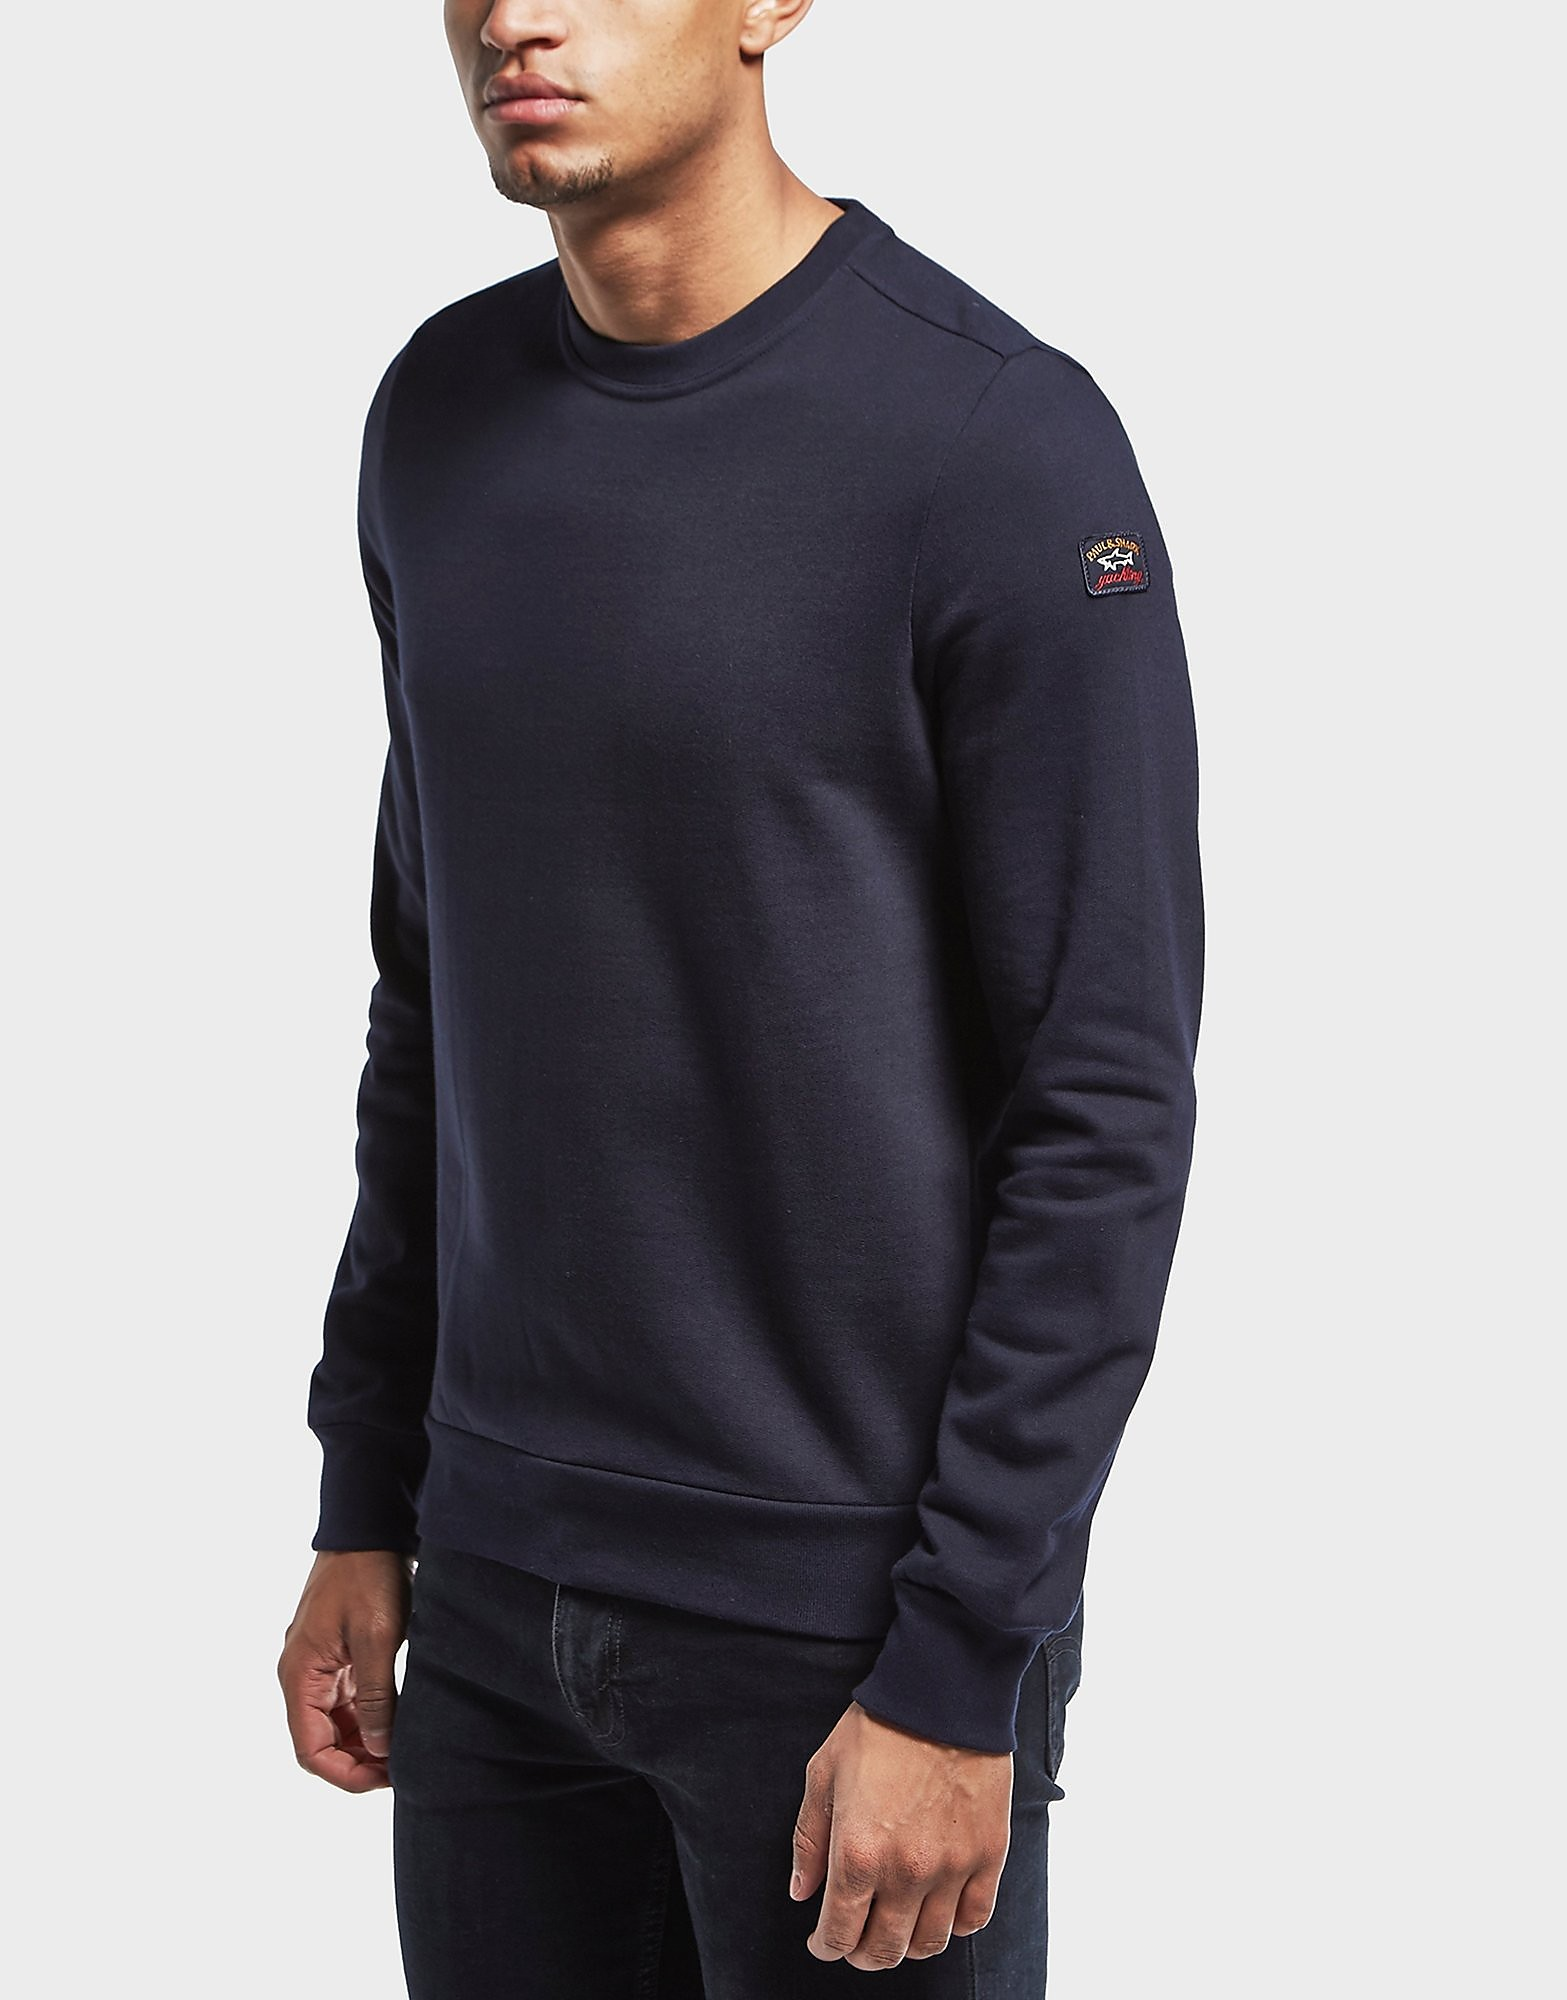 Paul and Shark Shark Fit Crew Sweatshirt